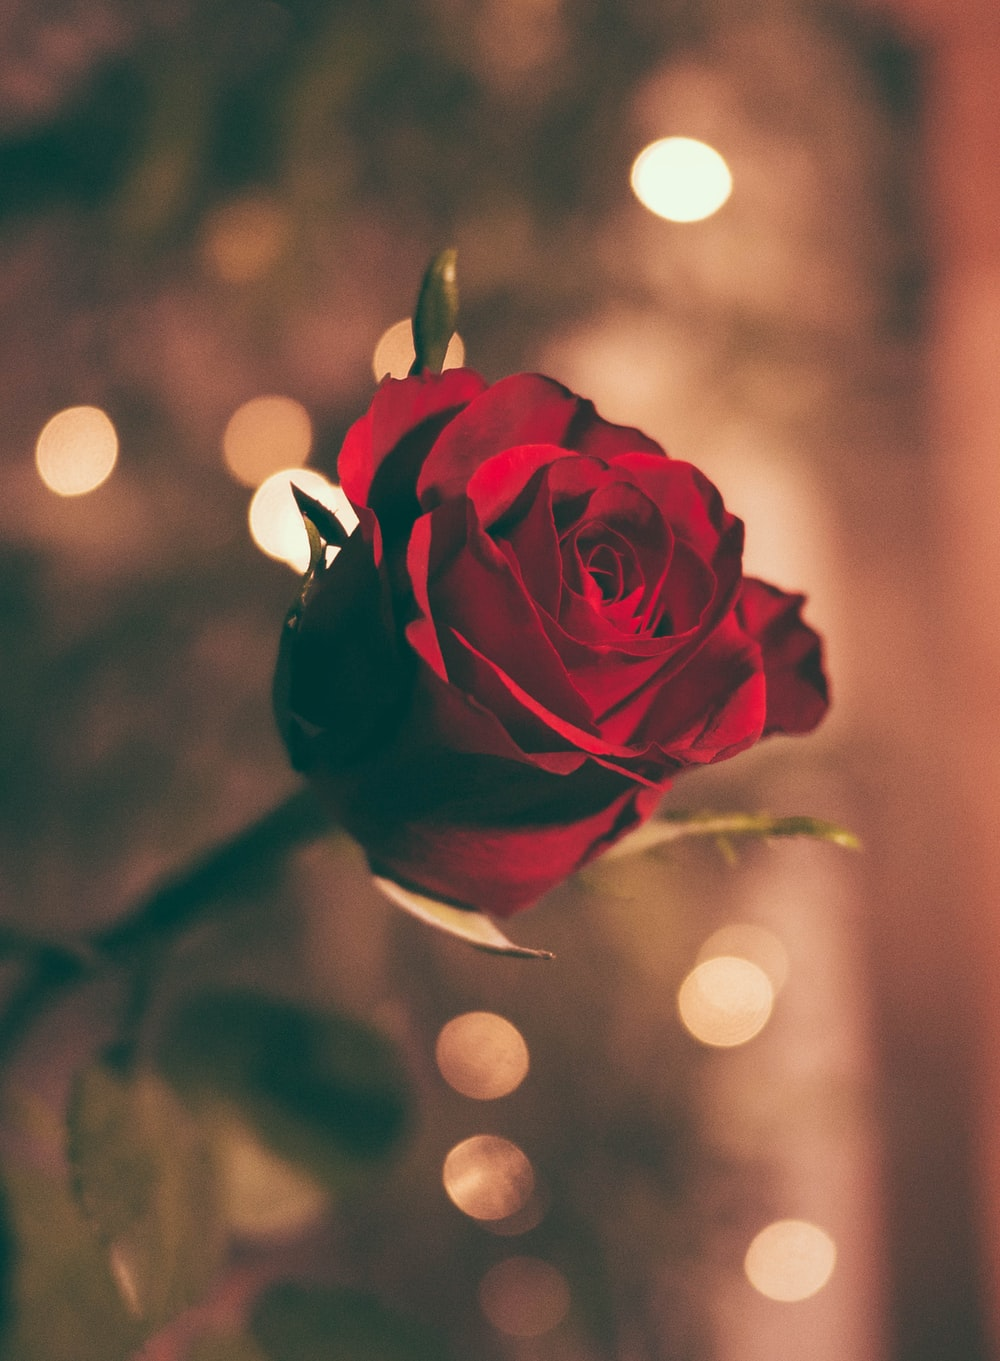 romantic rose pictures hq download free images on unsplash